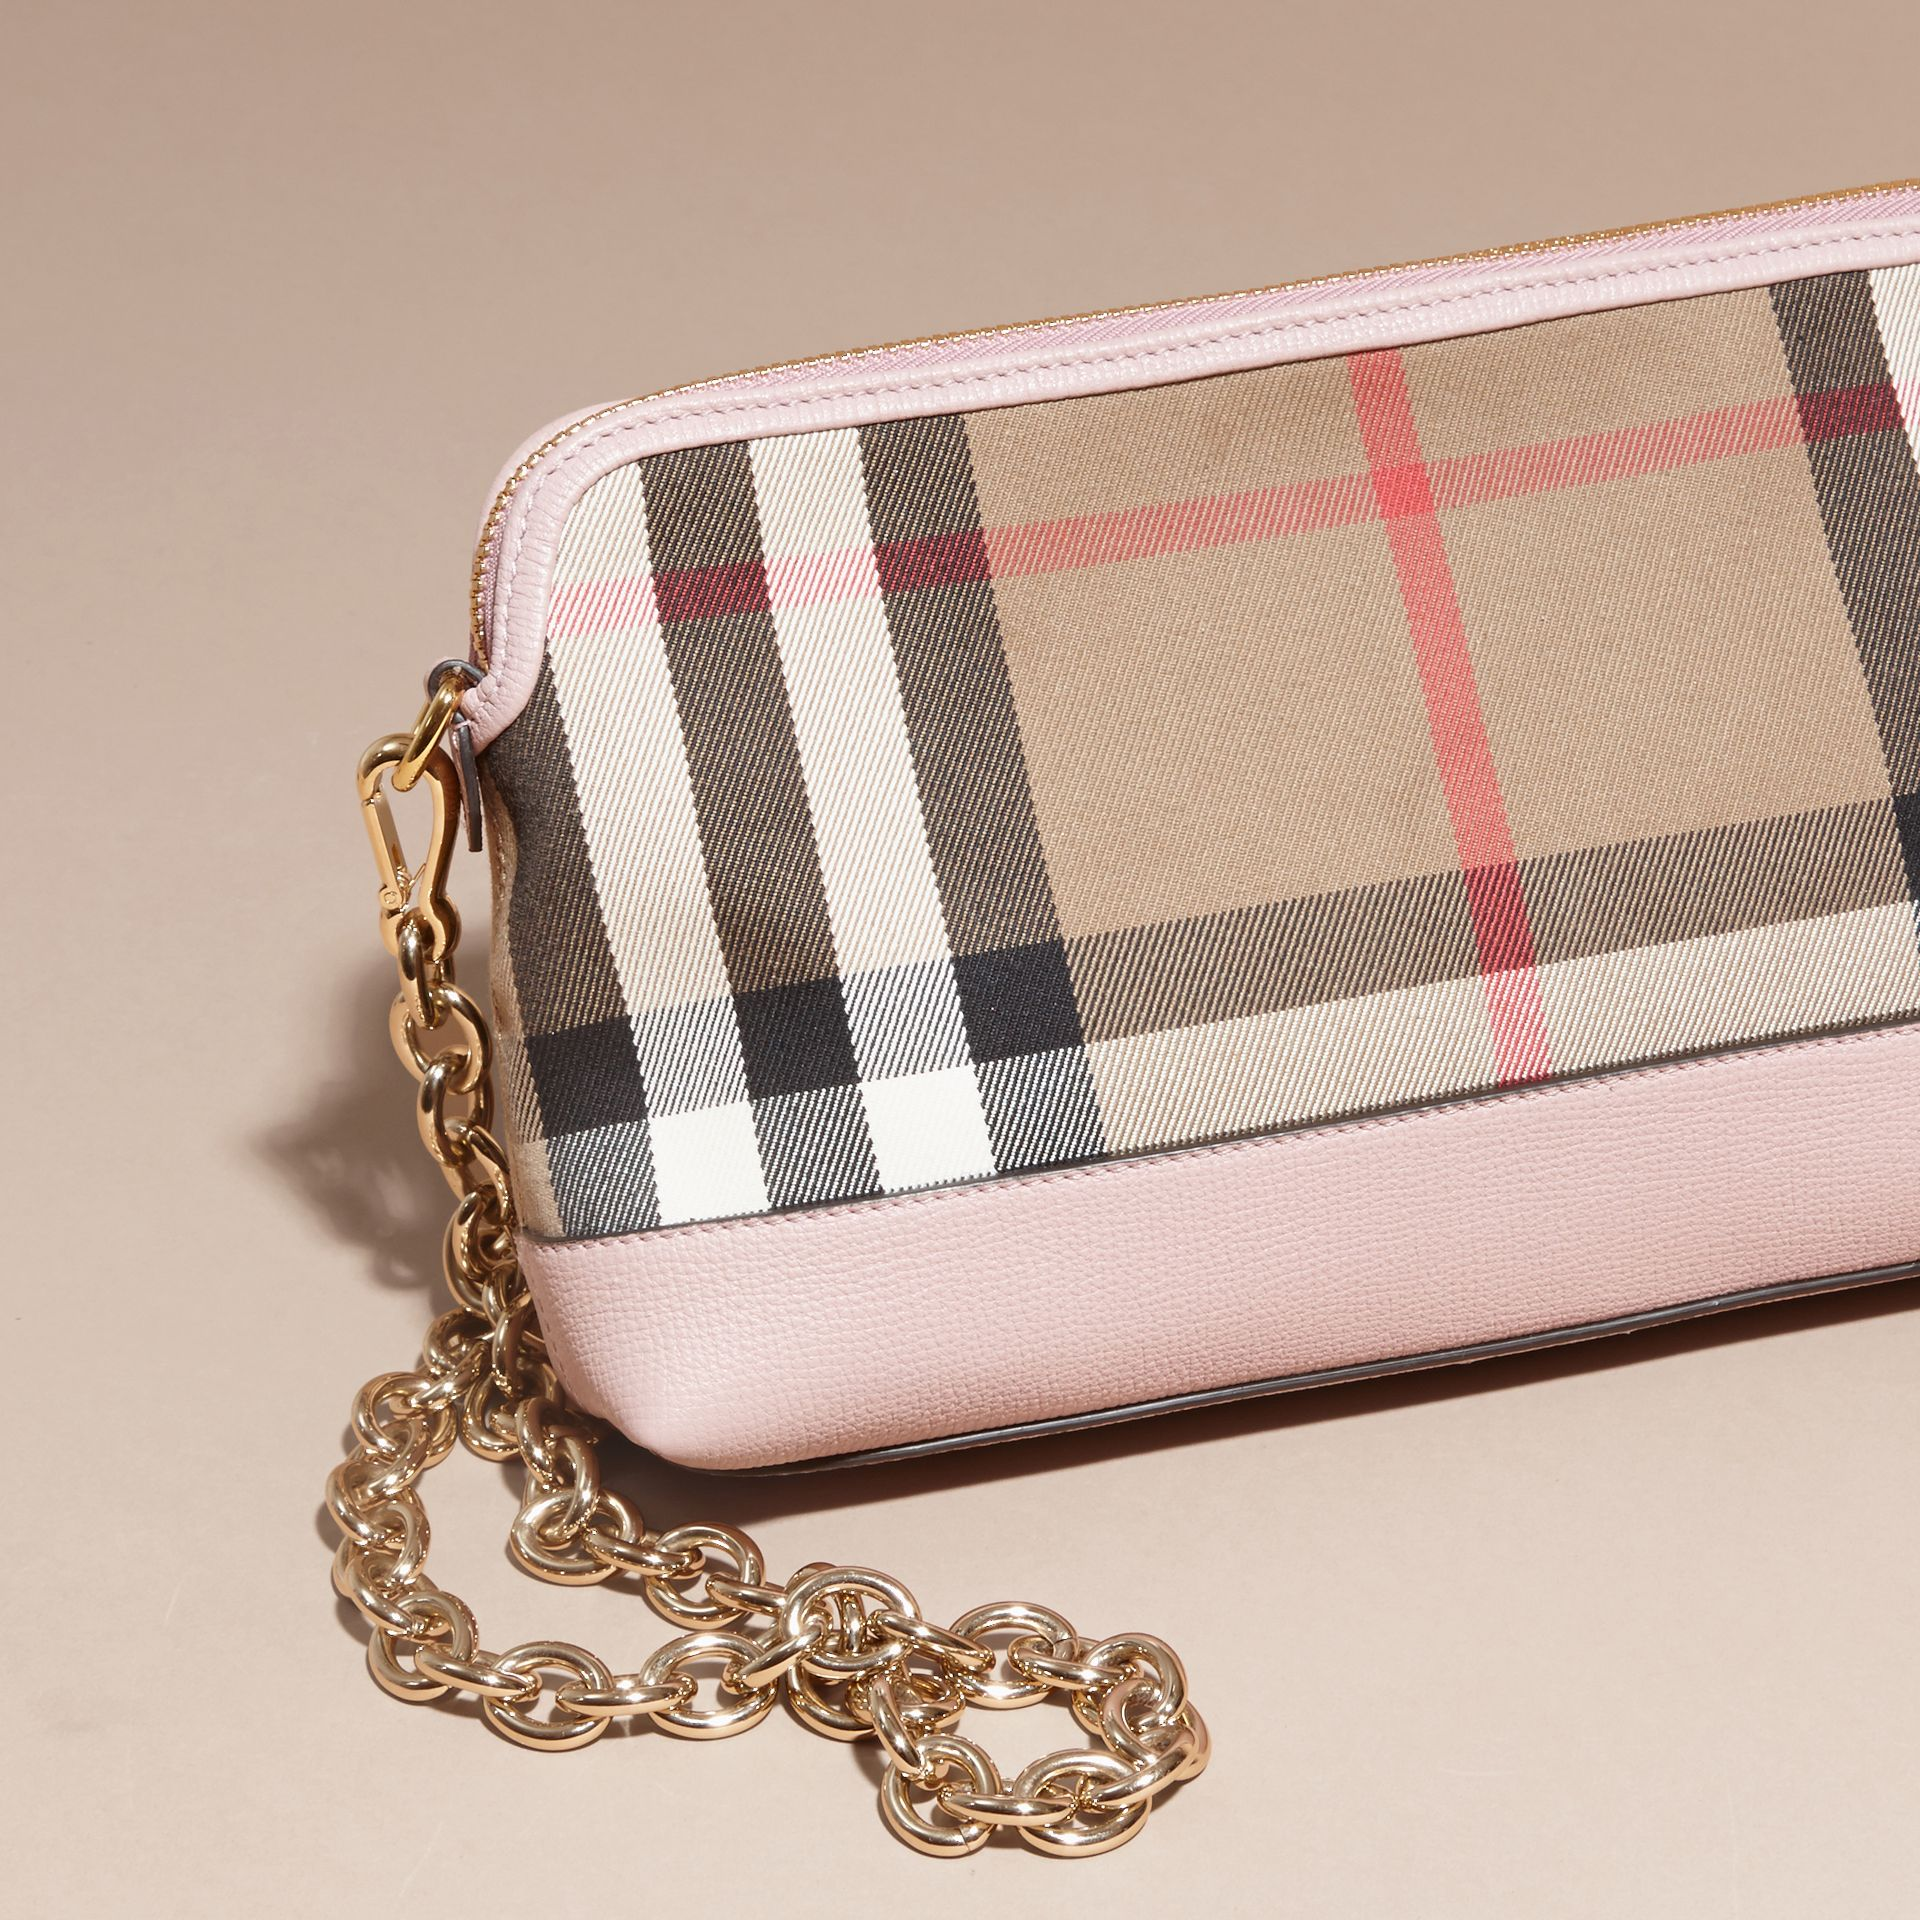 House Check and Leather Clutch Bag in Pale Orchid - Women | Burberry Hong Kong - gallery image 5